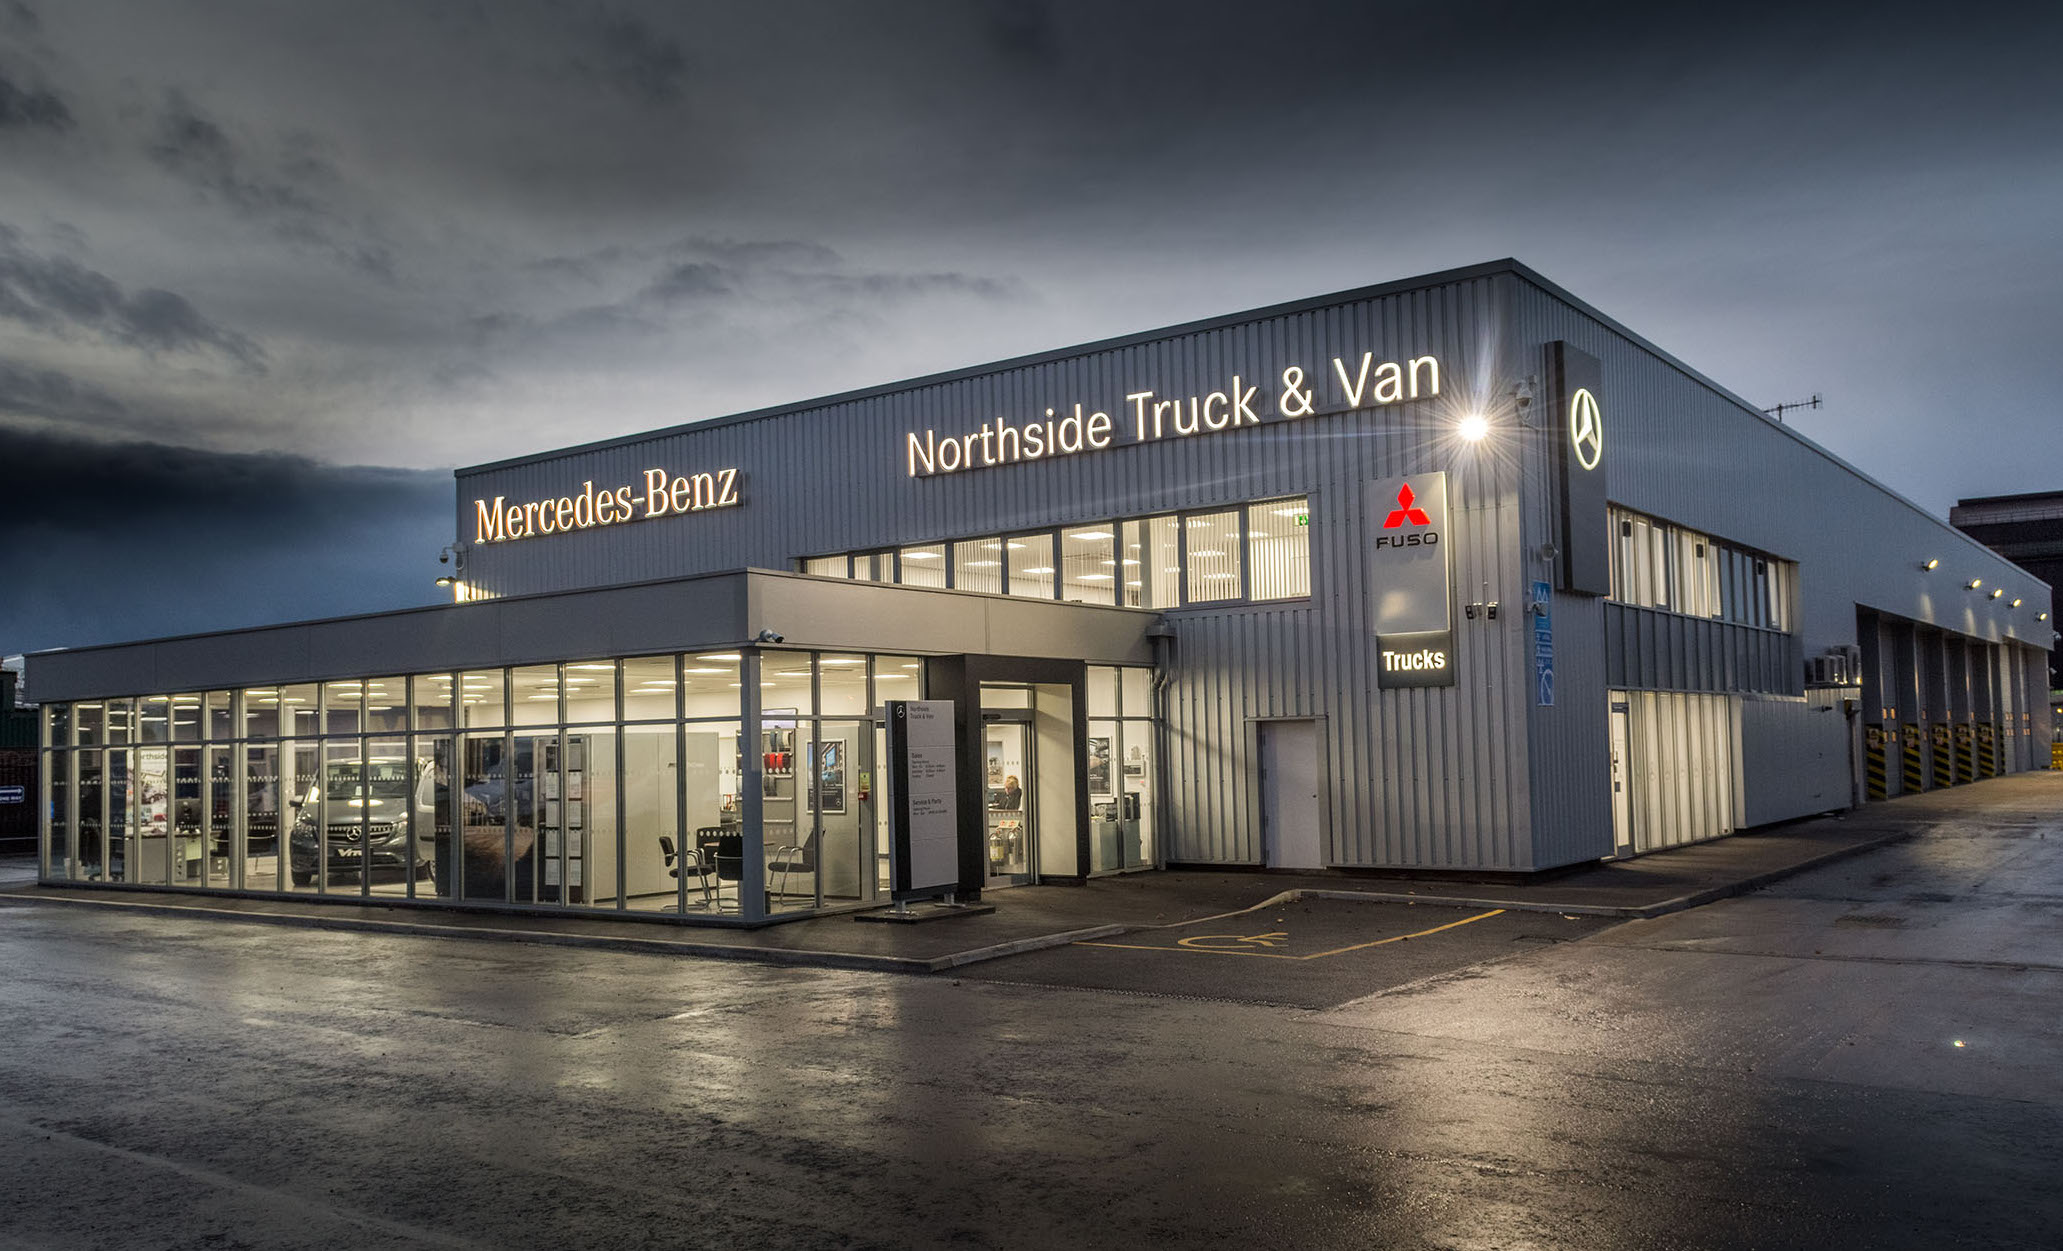 Northside truck van s star rises in sheffield for Mercedes benz retail careers